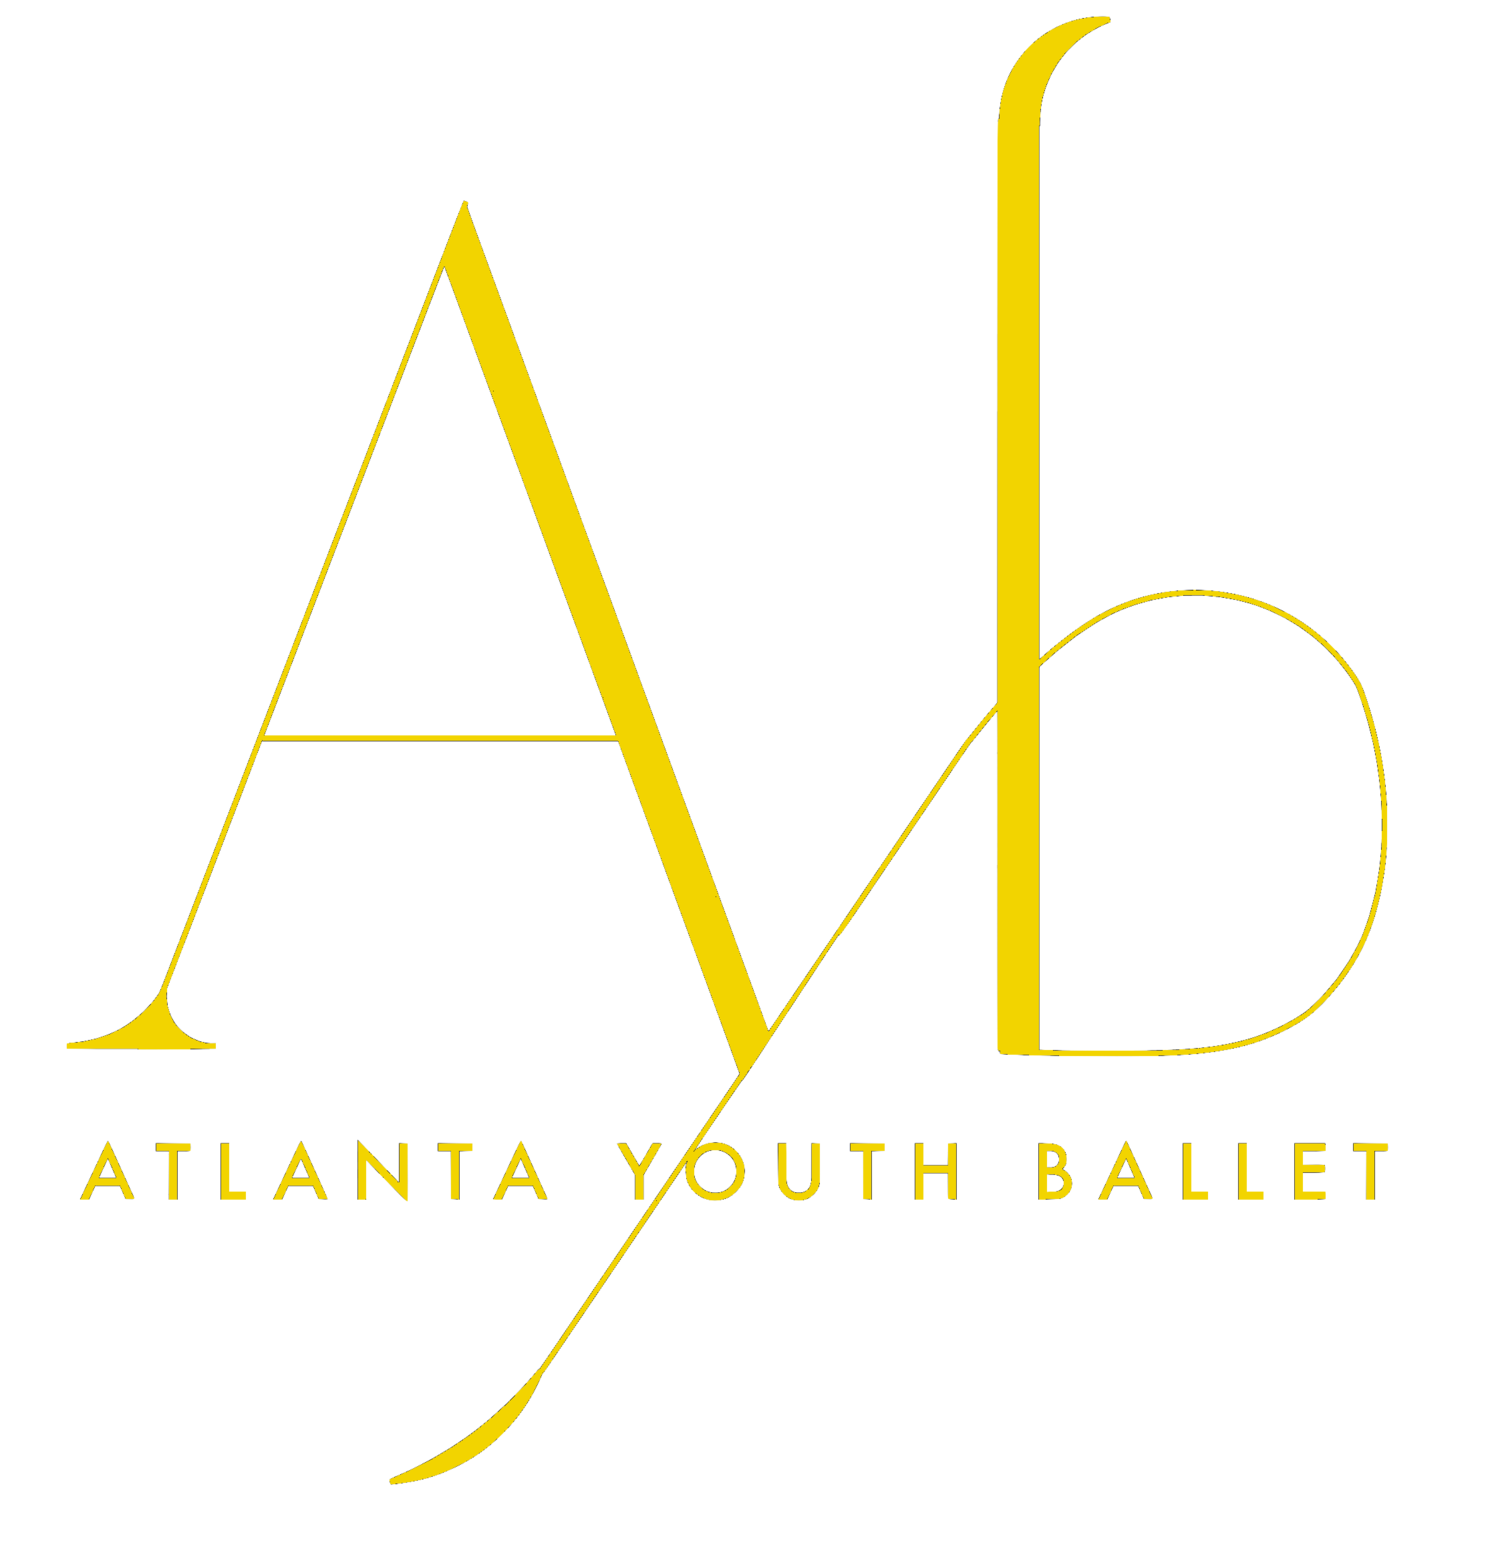 Atlanta Youth Ballet